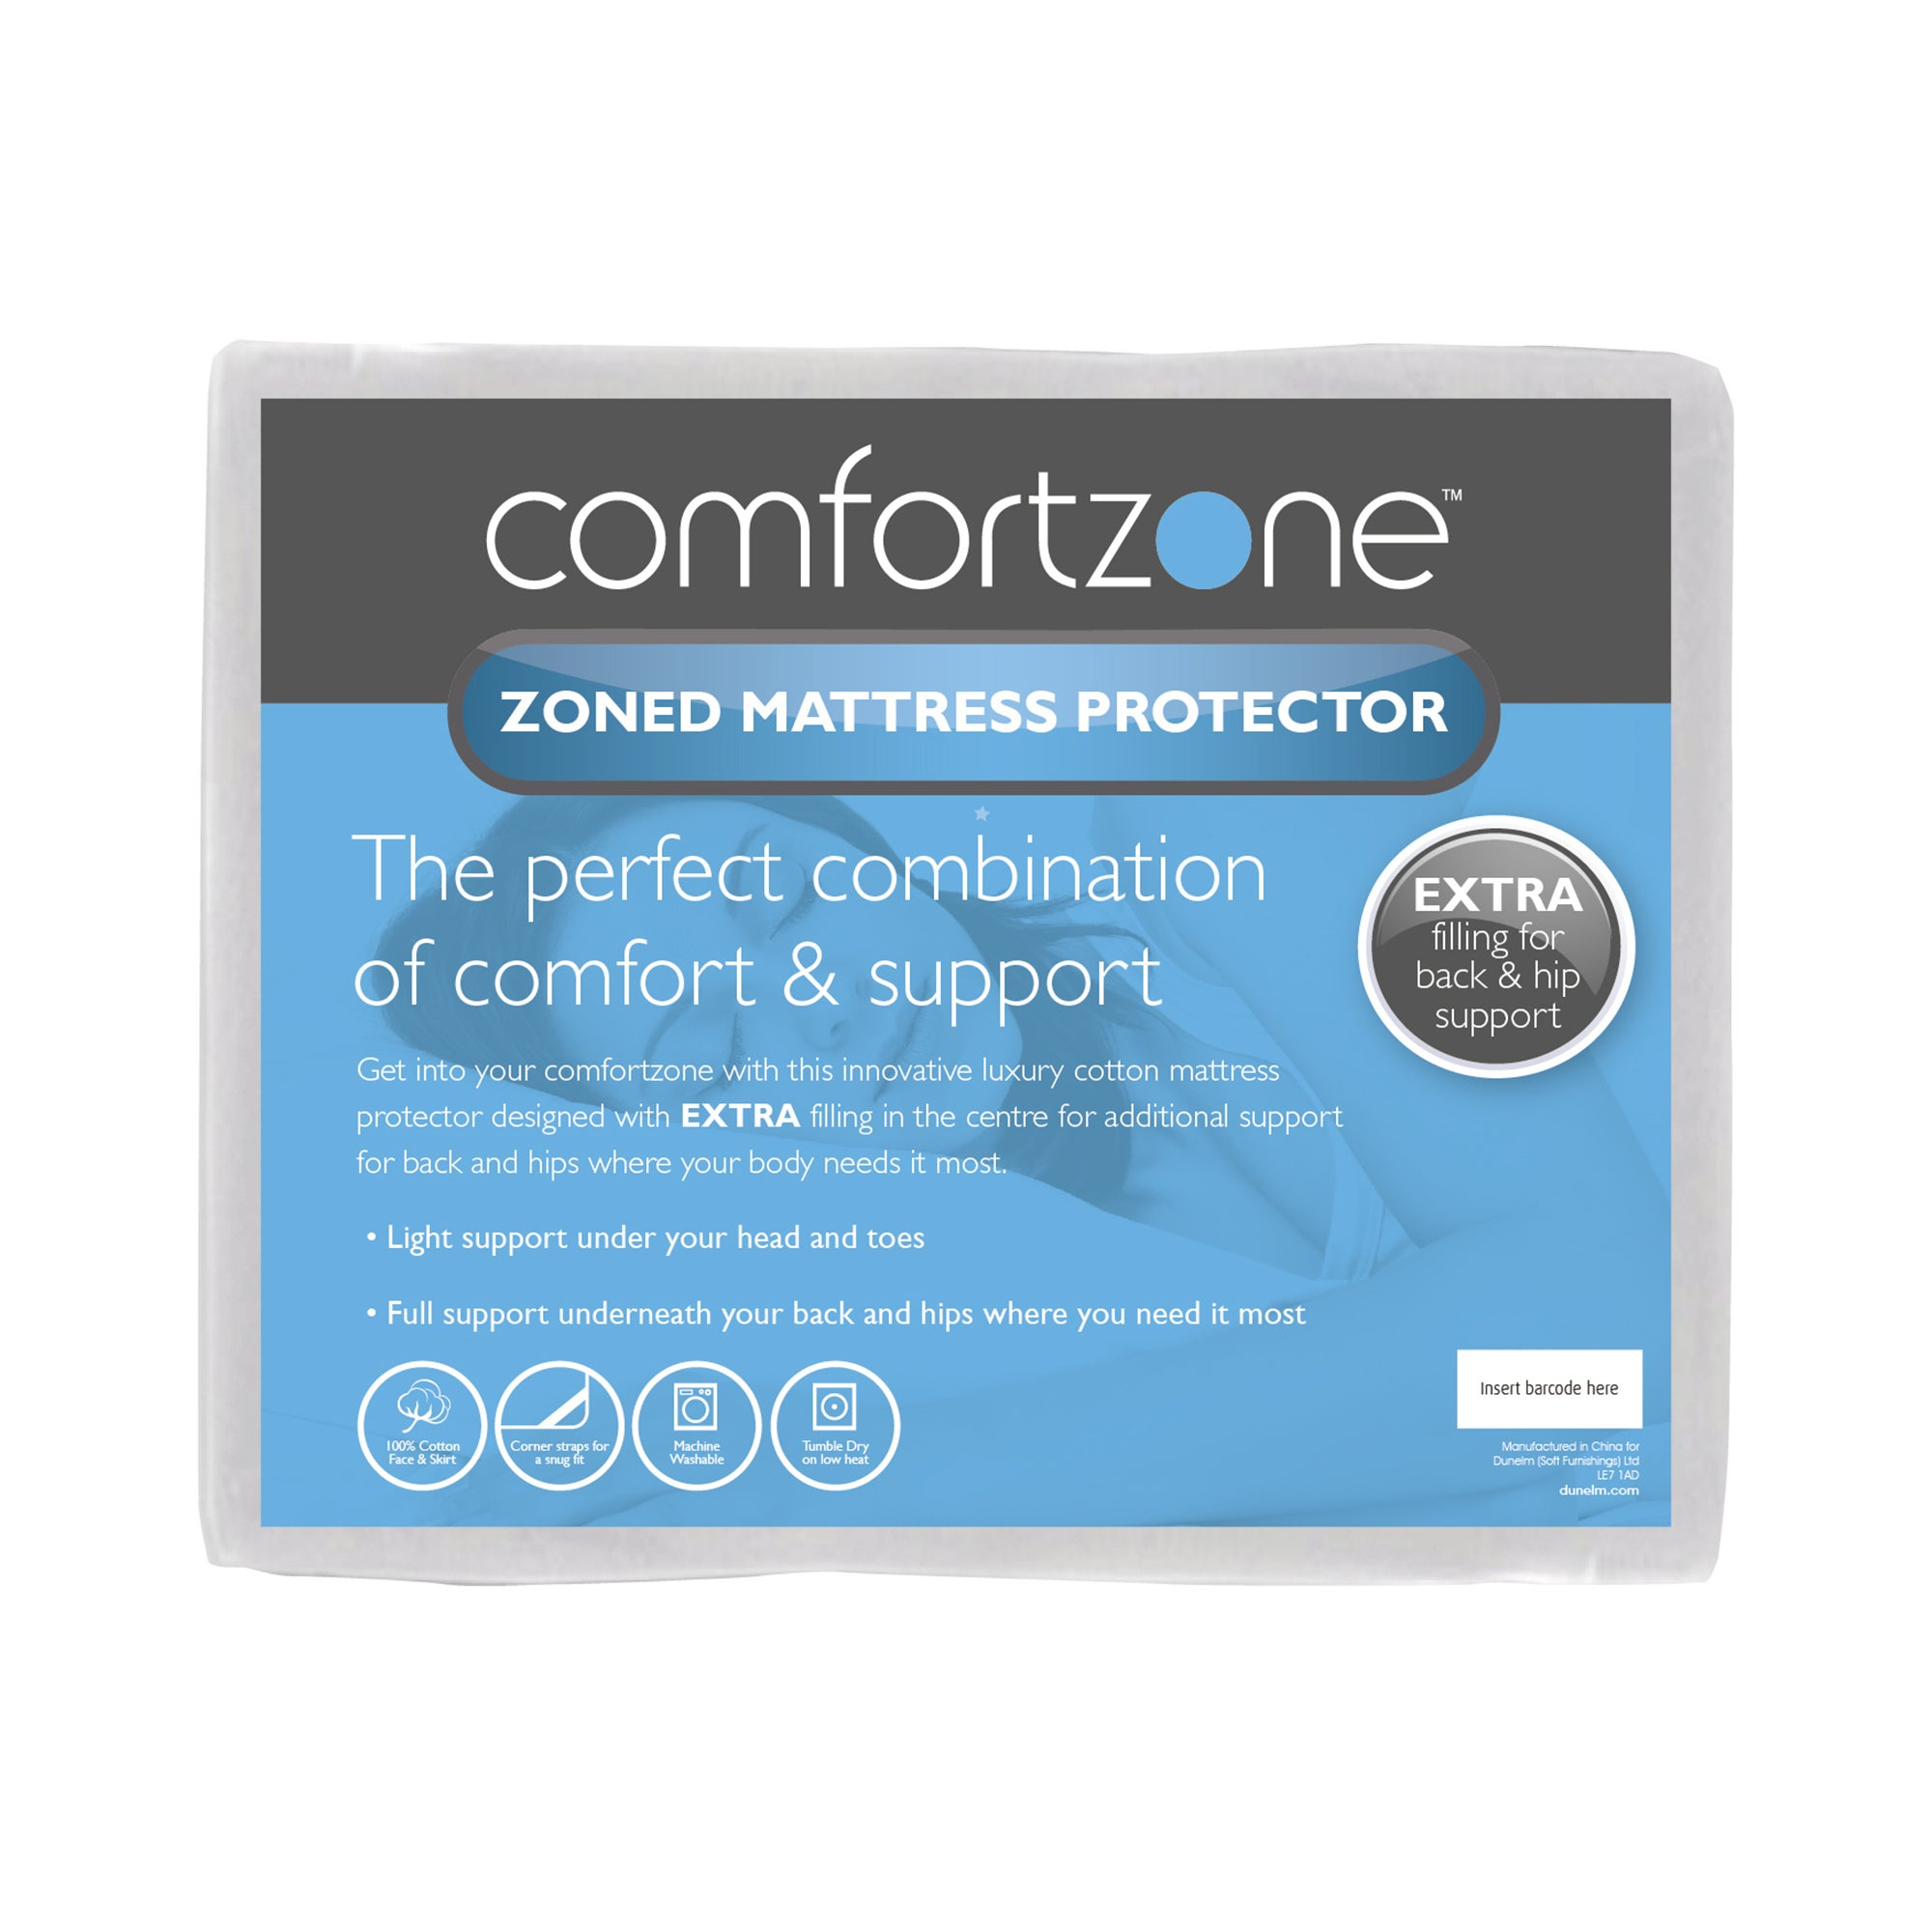 Comfortzone Zoned Mattress Protector